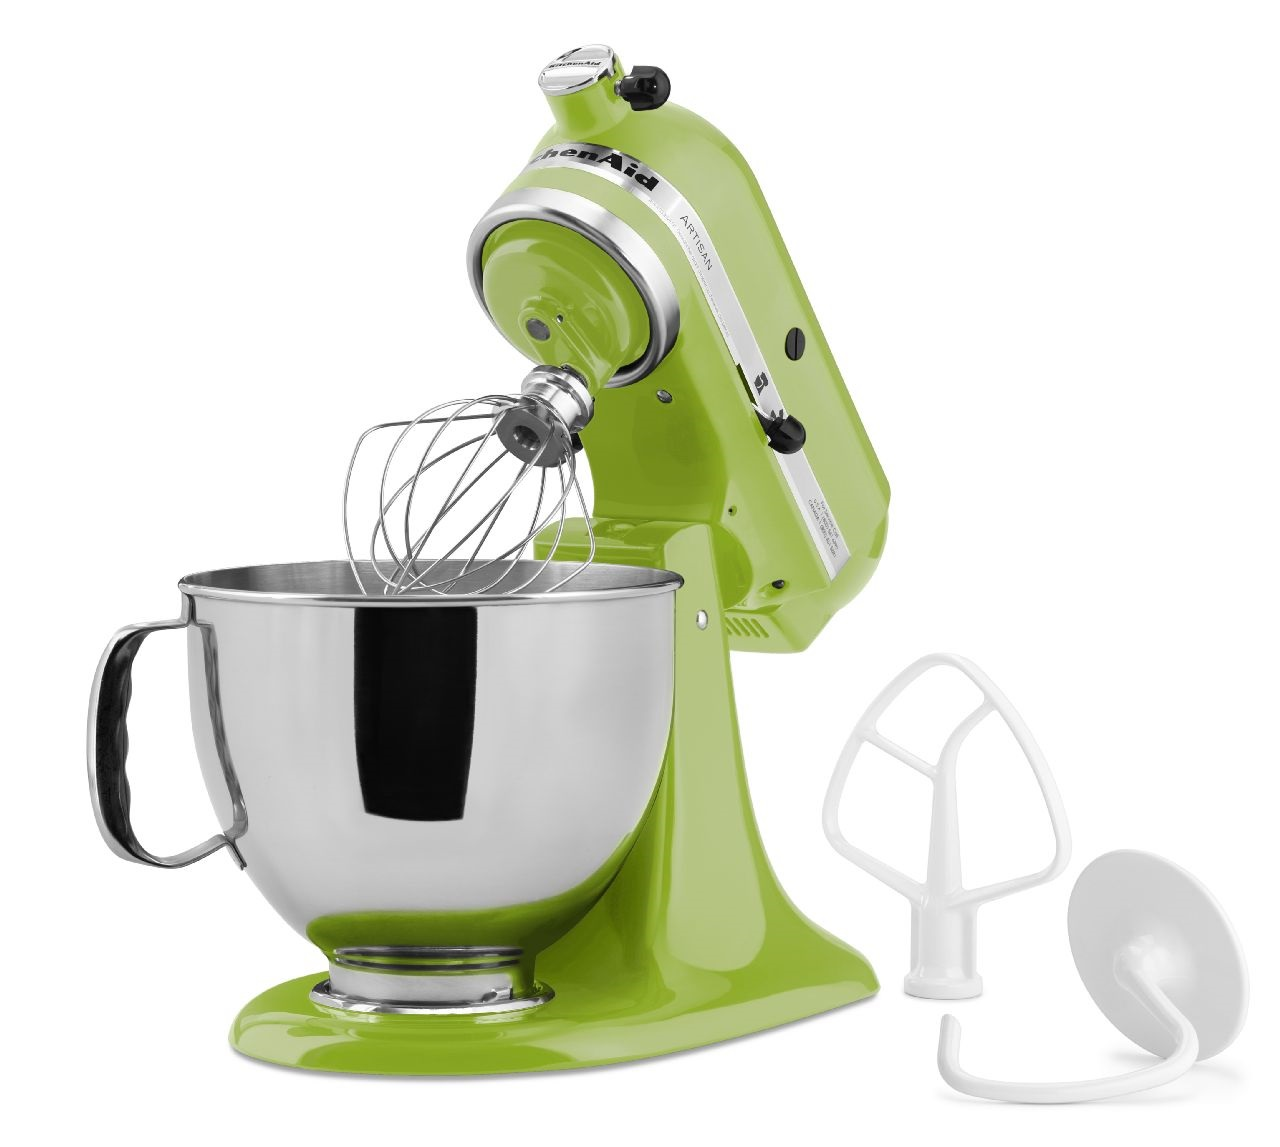 KitchenAid-Refurbished-Artisan-Series-5-Quart-Tilt-Head-Stand-Mixer-RRK150 thumbnail 58